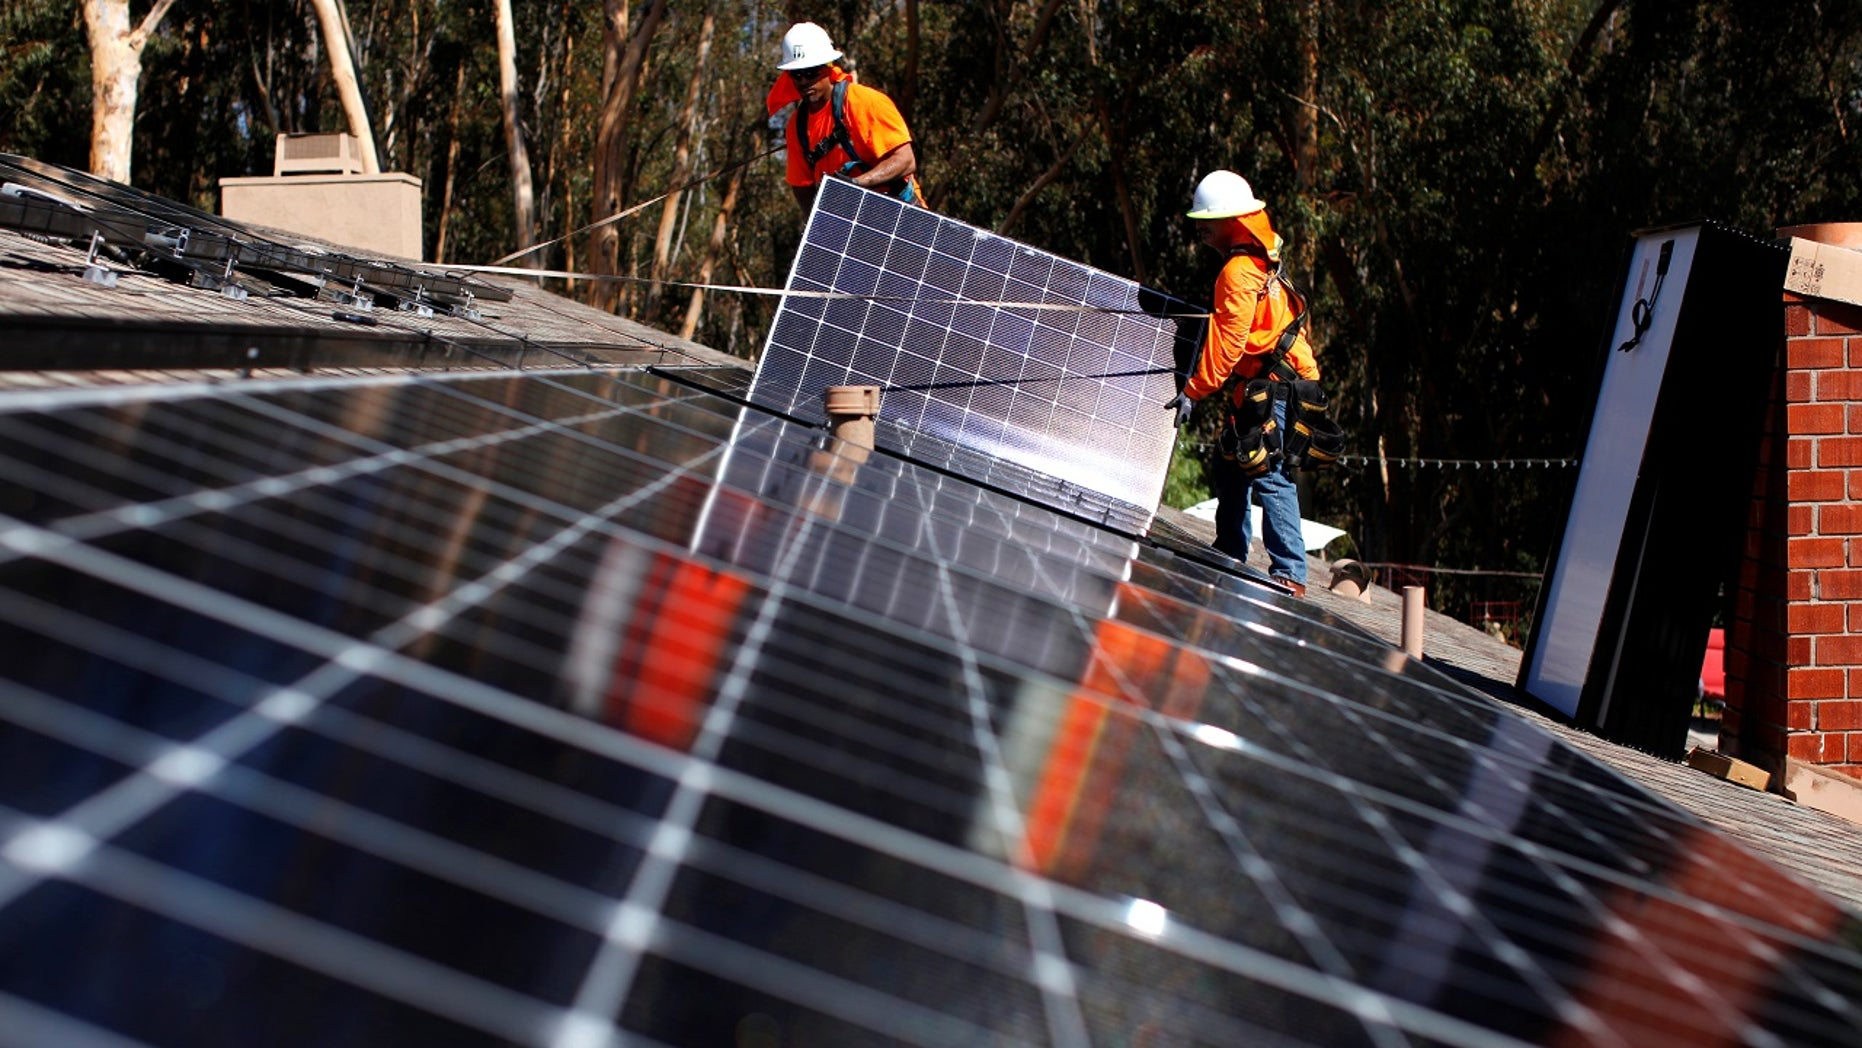 Solar installers from Baker Electric place solar panels on the roof of a residential home in Scripps Ranch, San Diego, Calif., Oct. 14, 2016.